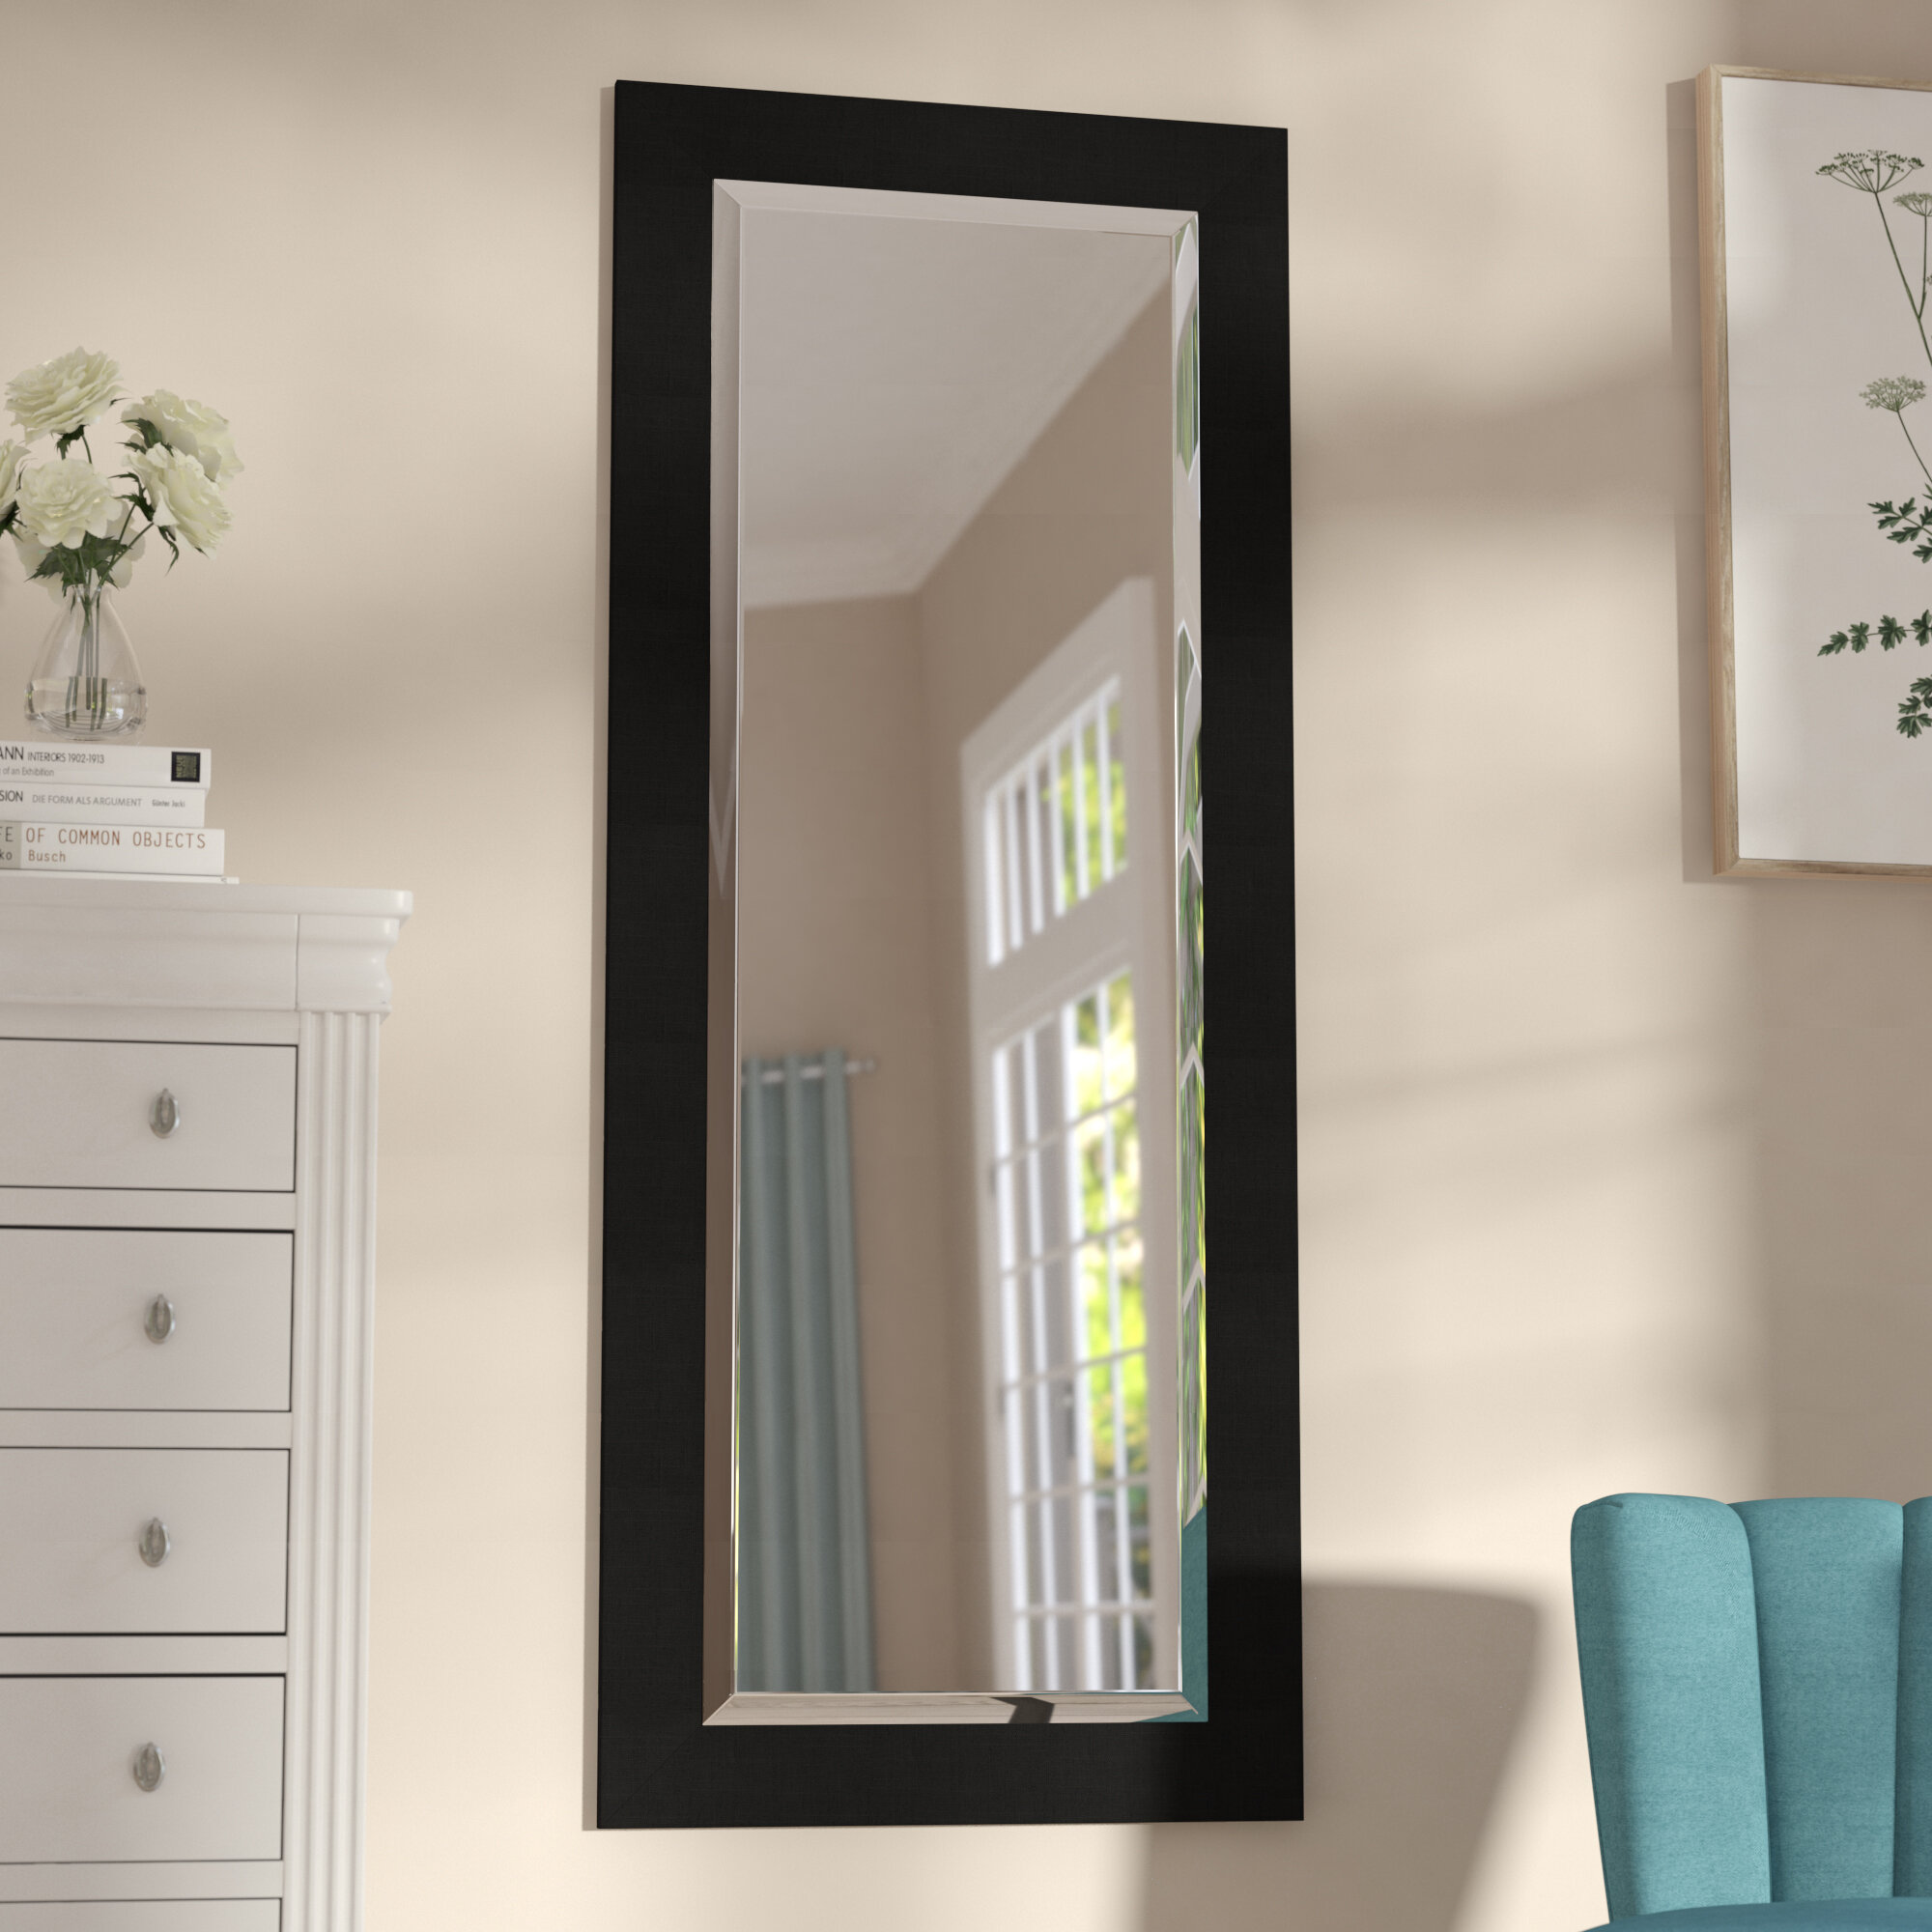 Darby Home Co Satin Full Length Mirror & Reviews | Wayfair